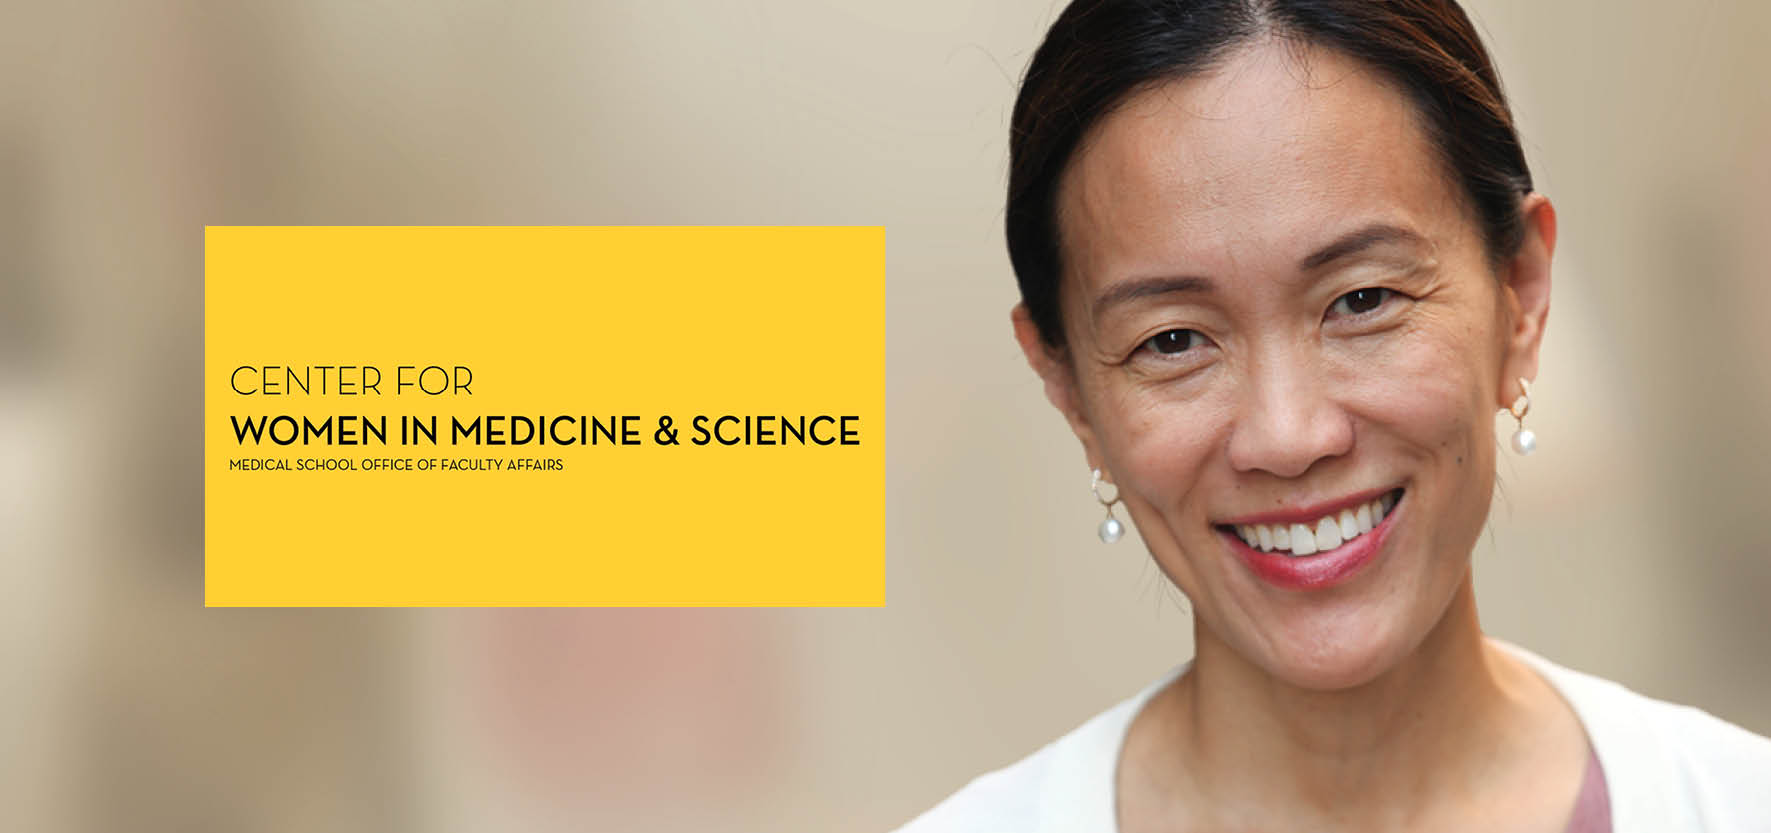 Dr. Esther Choo and Center for Women in Medicine and Science